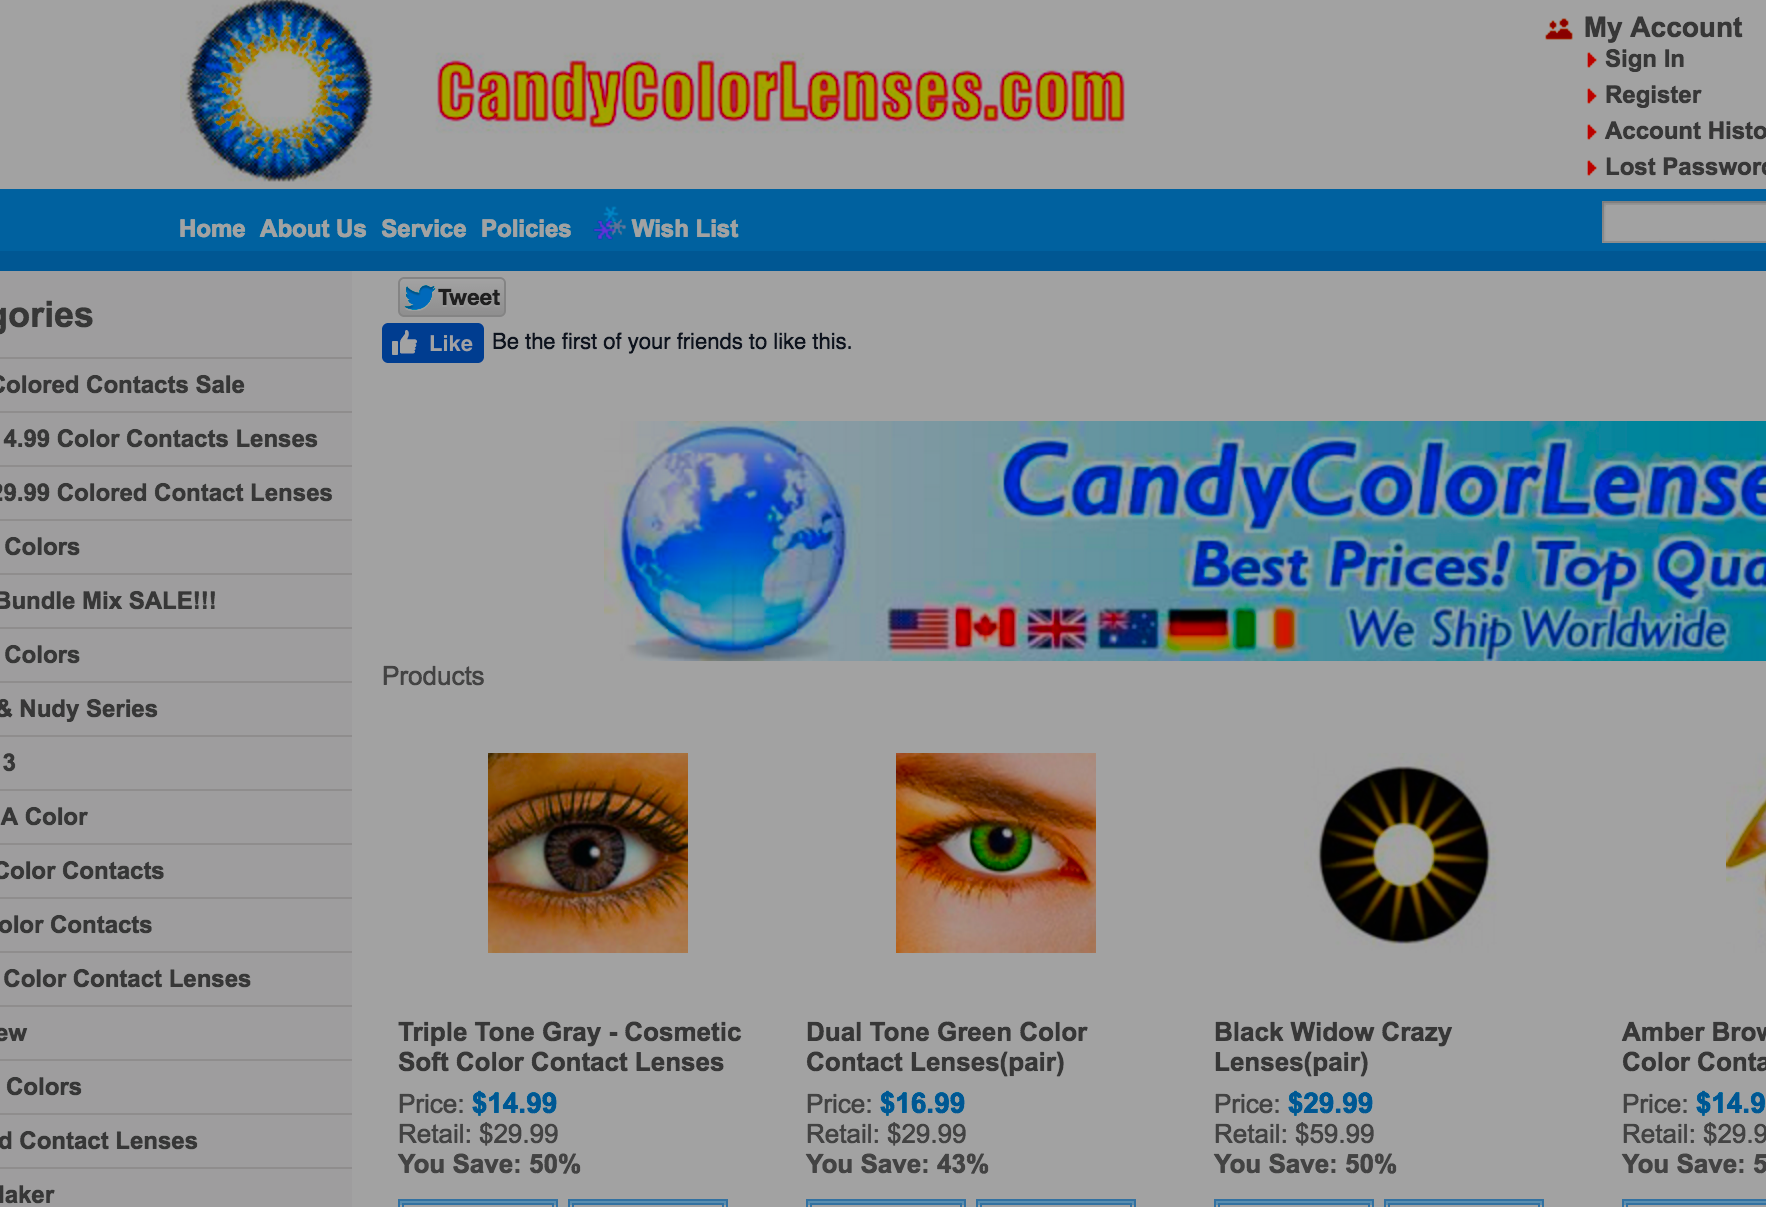 Owner Of Online Colored Contact Lens Store Pleads Guilty To Importing & Selling Counterfeit Lenses